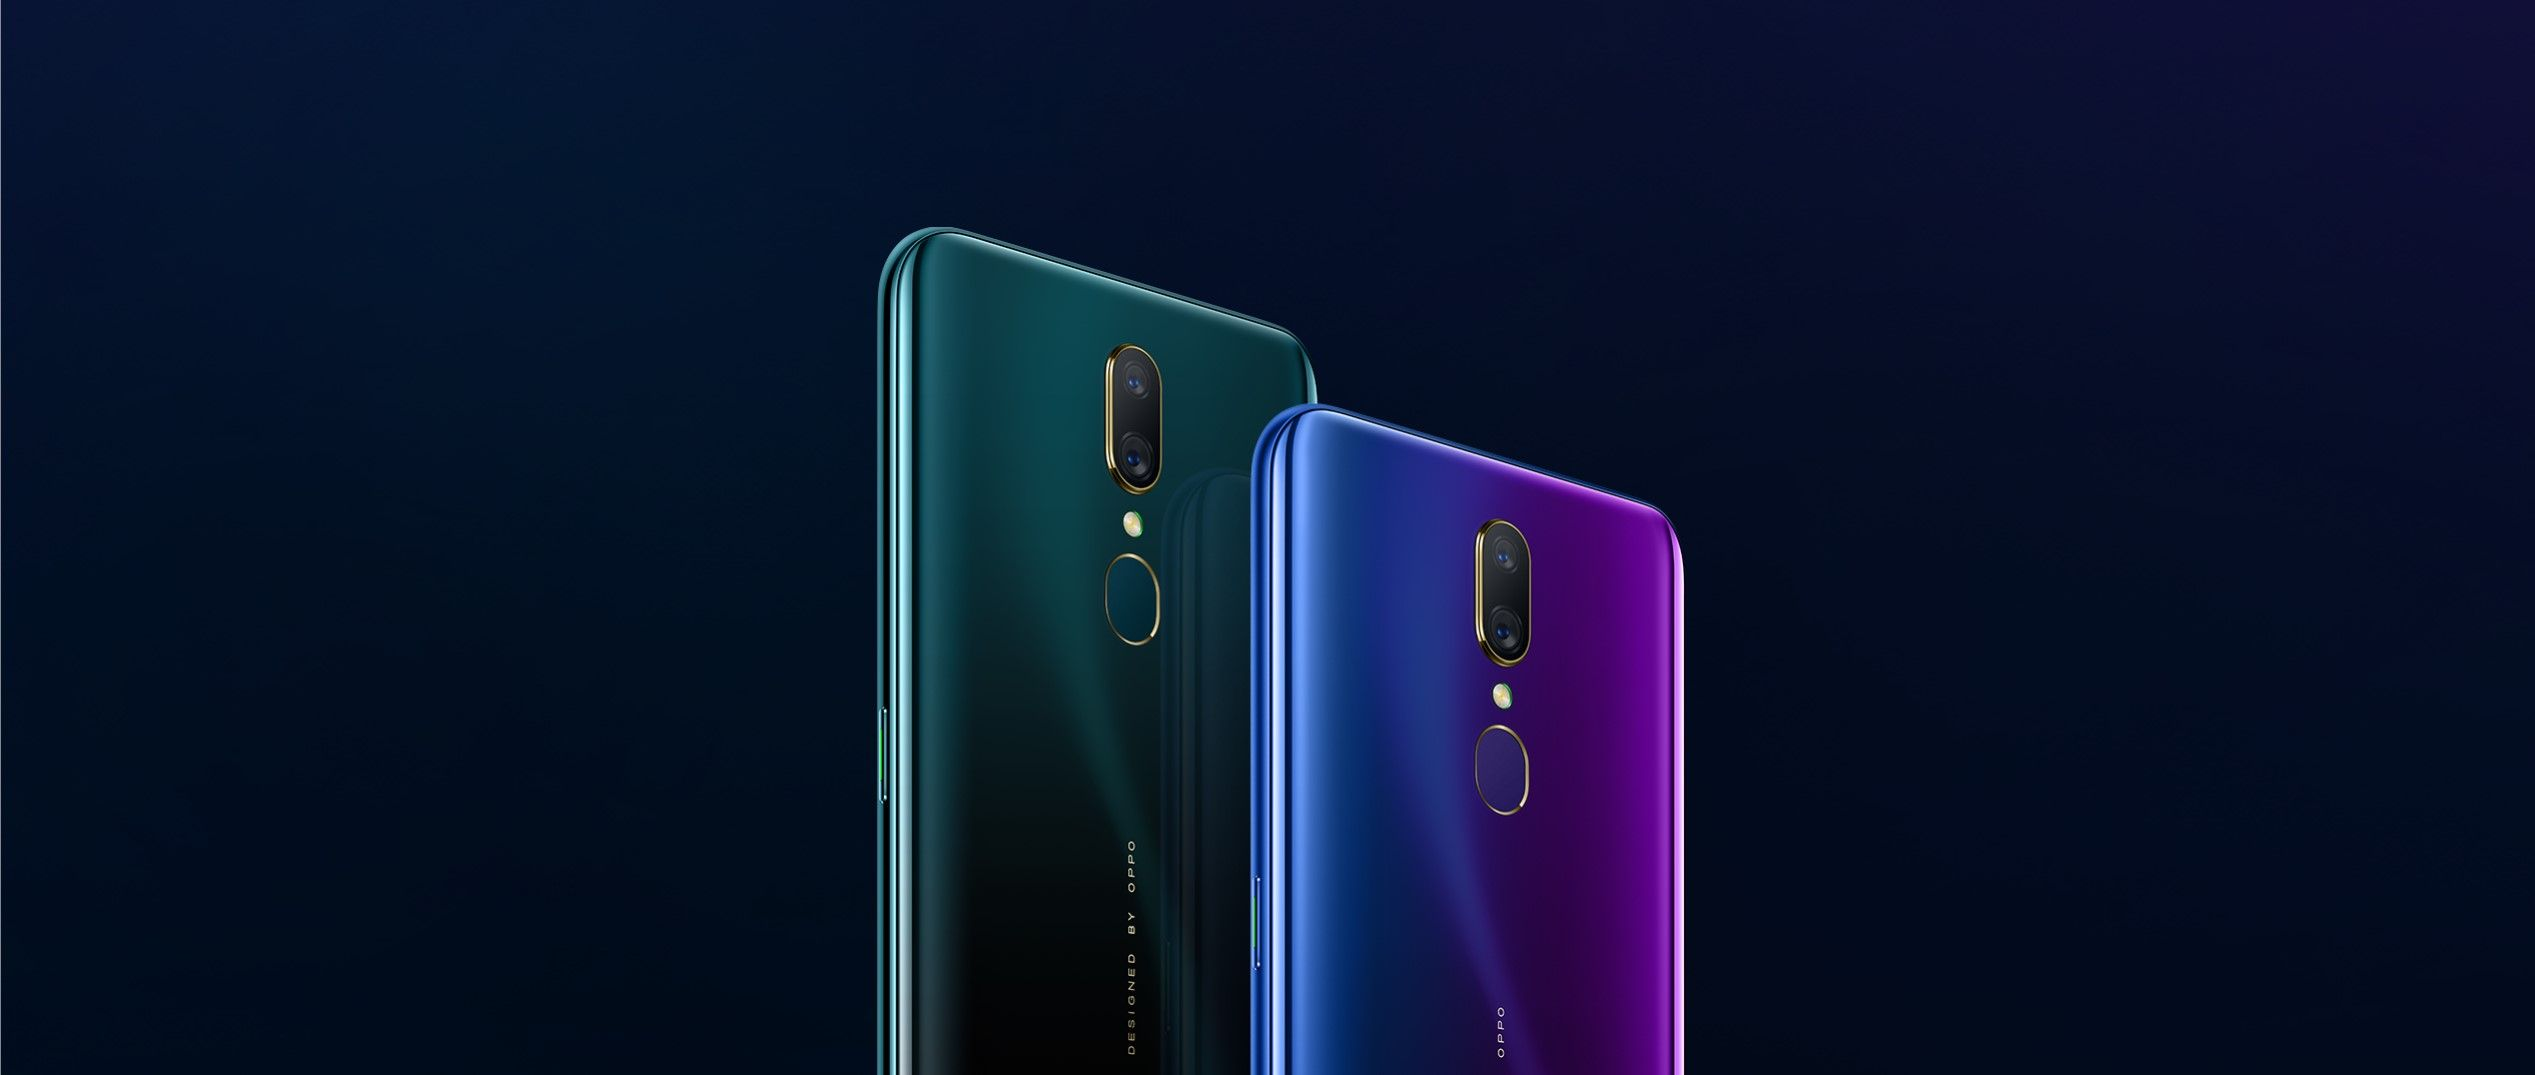 OPPO A9 Gets All the Basics Right: Big Screen, Dual-Camera